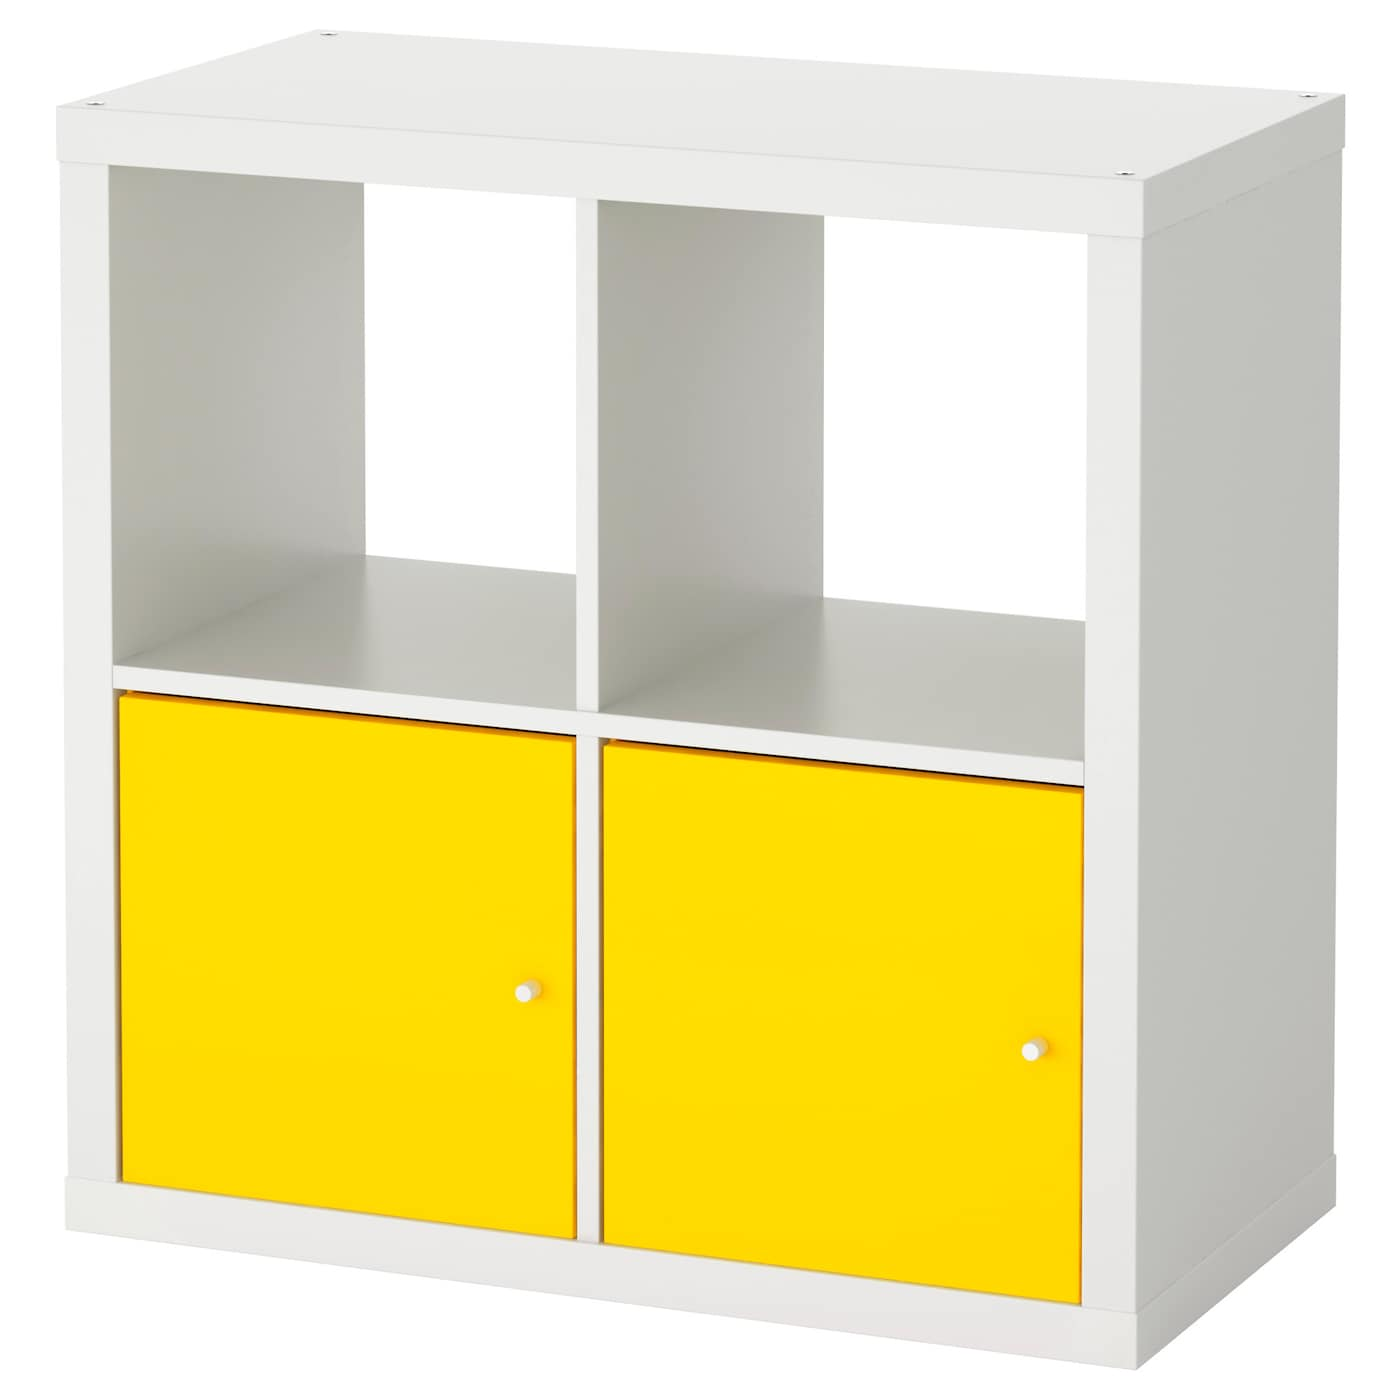 Meuble Ikea Expedit - Kallax Shelving Unit With Doors White Yellow 77×77 Cm Ikea[mjhdah]http://www.ikea.com/gb/en/images/products/kallax-shelving-unit-high-gloss-white__0365639_pe549081_s5.jpg